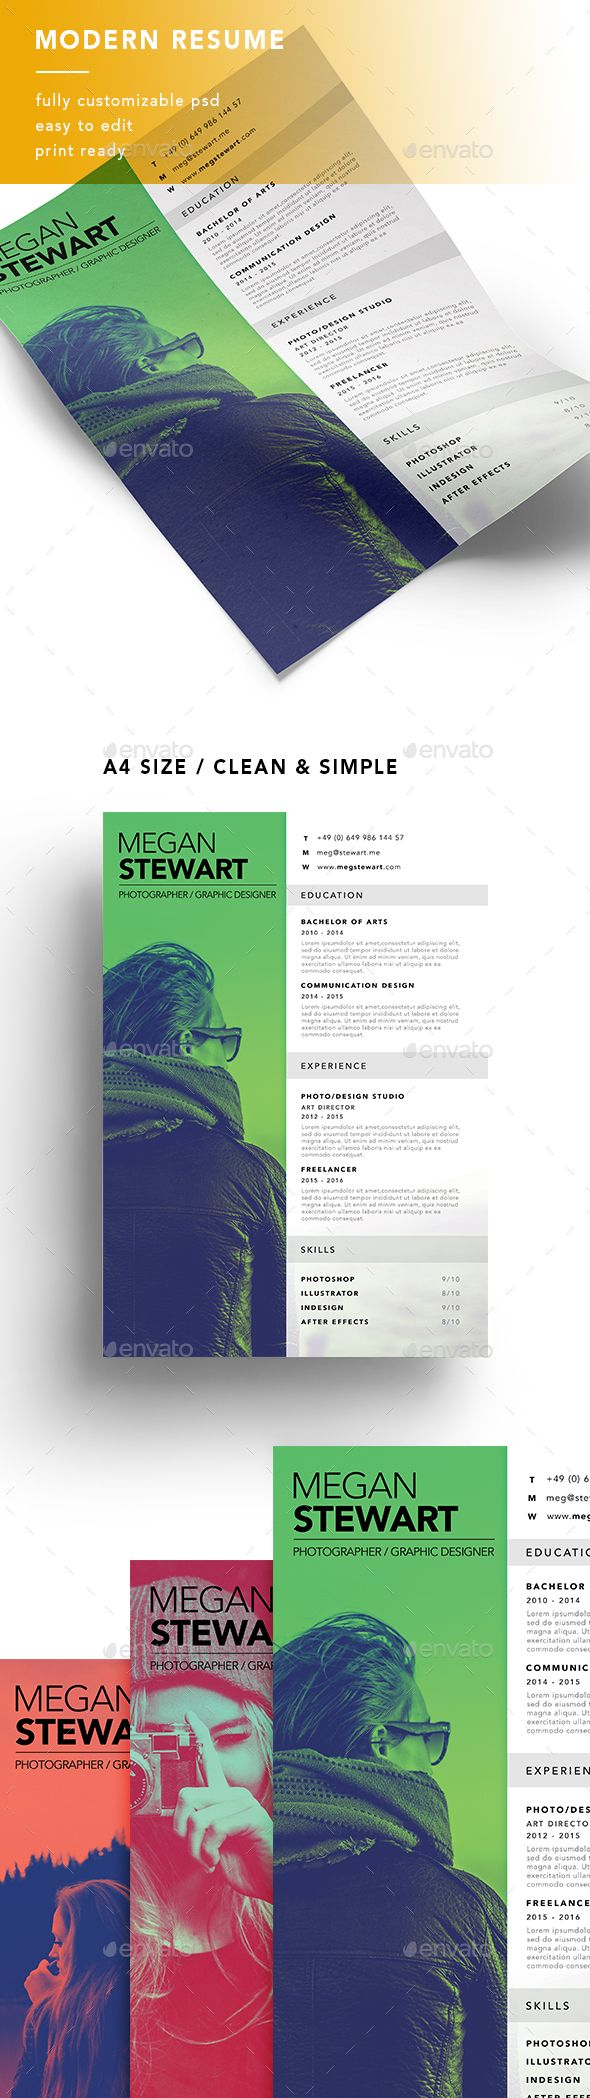 A4 Modern Resume #resume qualifications #resume skills #resume template • Available here → http://graphicriver.net/item/a4-modern-resume/15524659?ref=pxcr